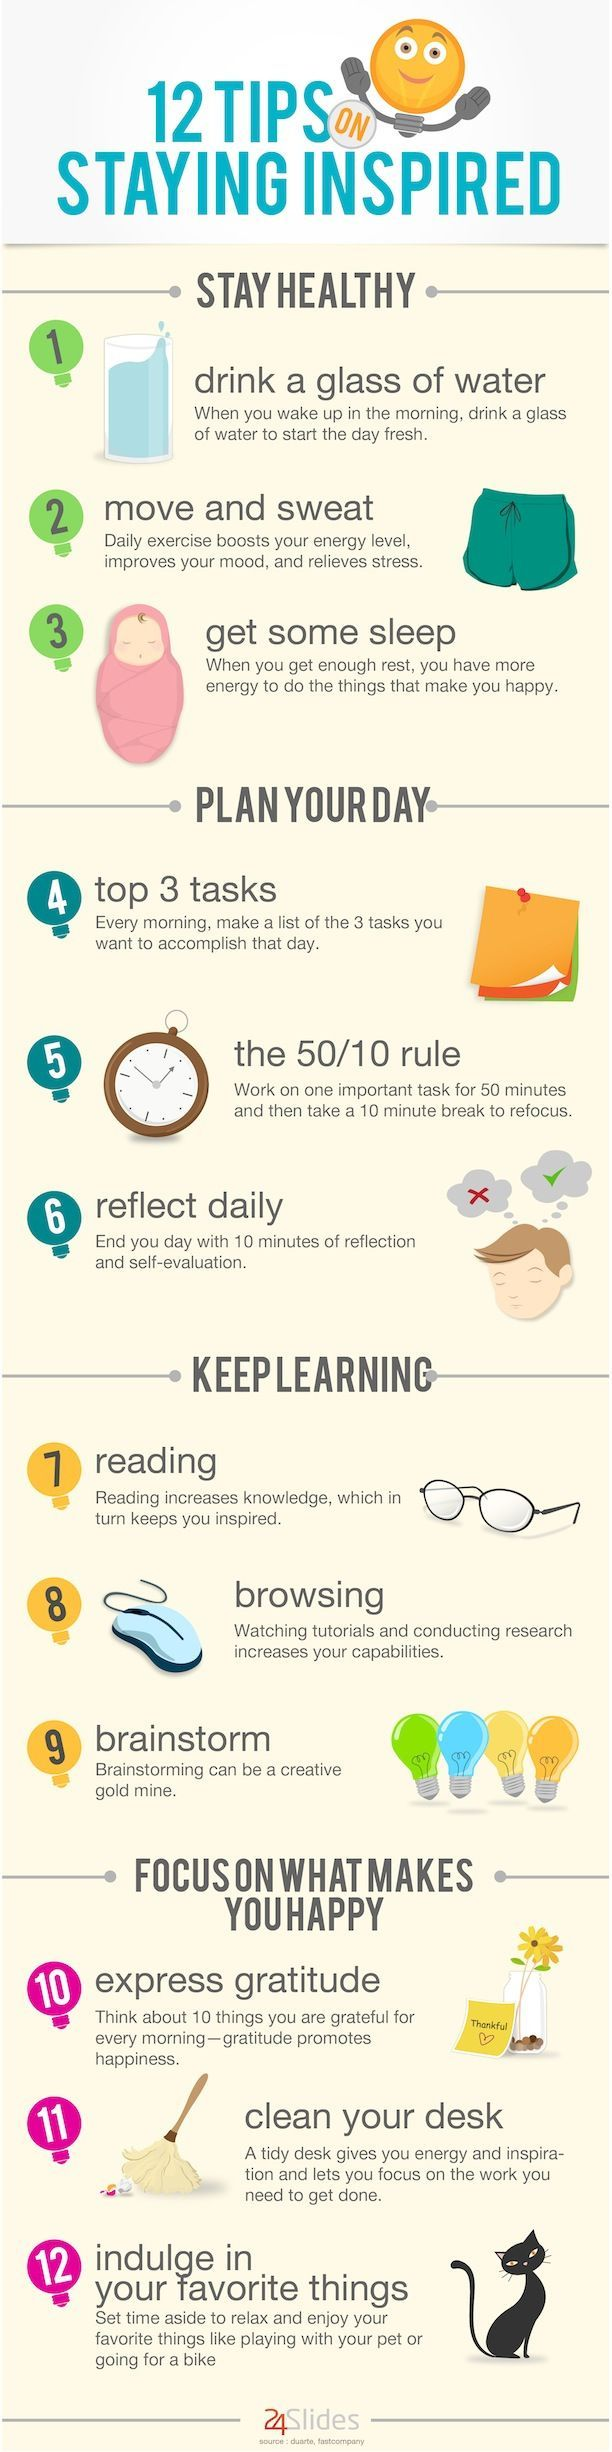 Here`s another great infographic that can help you take your level of business or  life success to the next level!It`s always a good idea to take notes or journal any thoughts that might come to your mind when reading them.